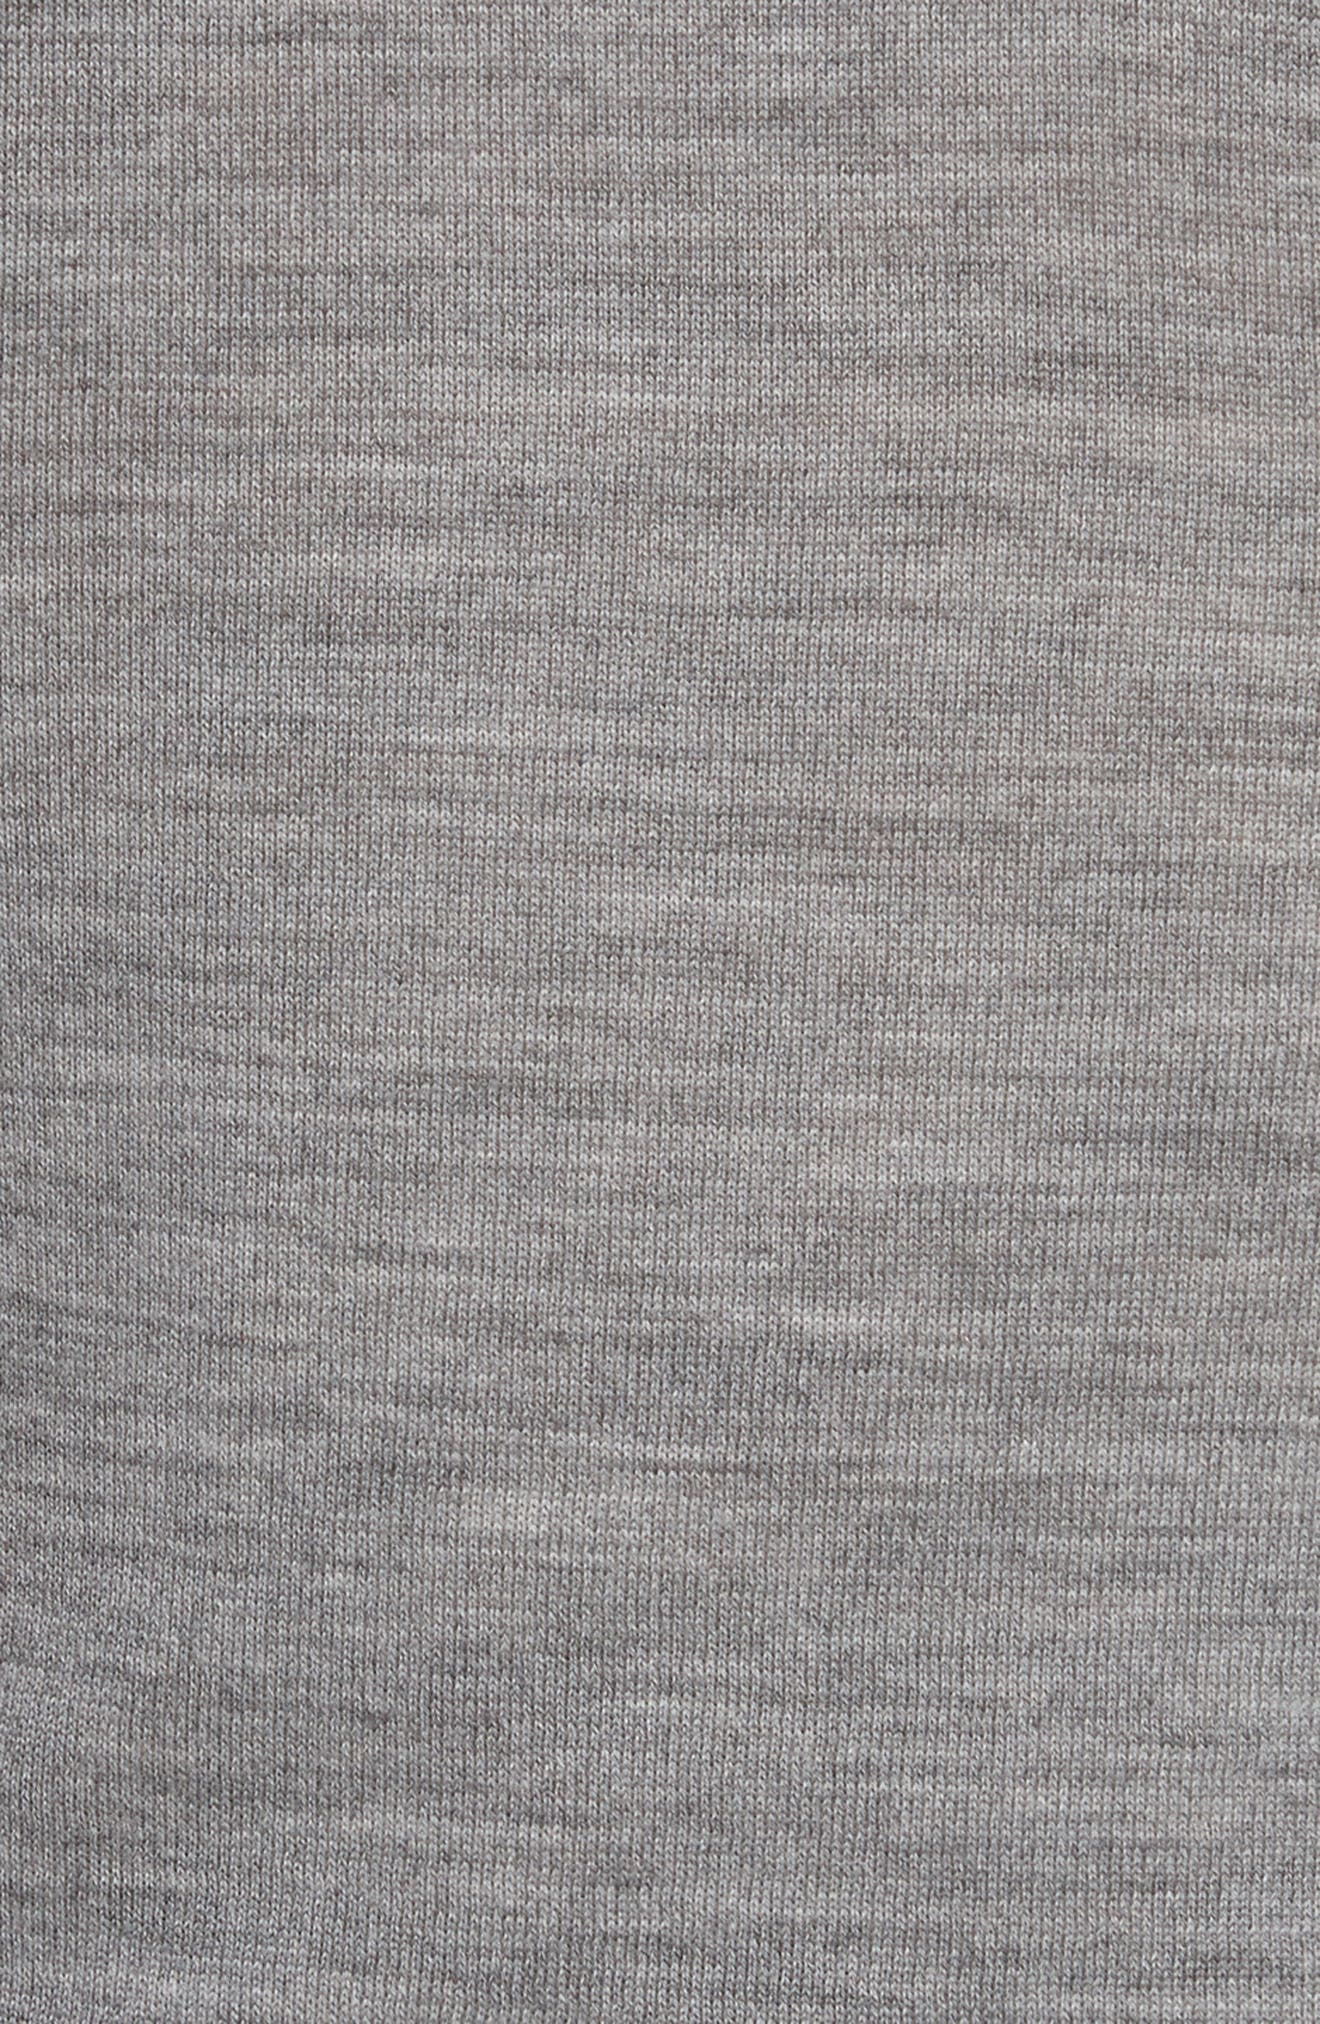 Knit Merino Wool Layered Top,                             Alternate thumbnail 5, color,                             Heather Grey/ White